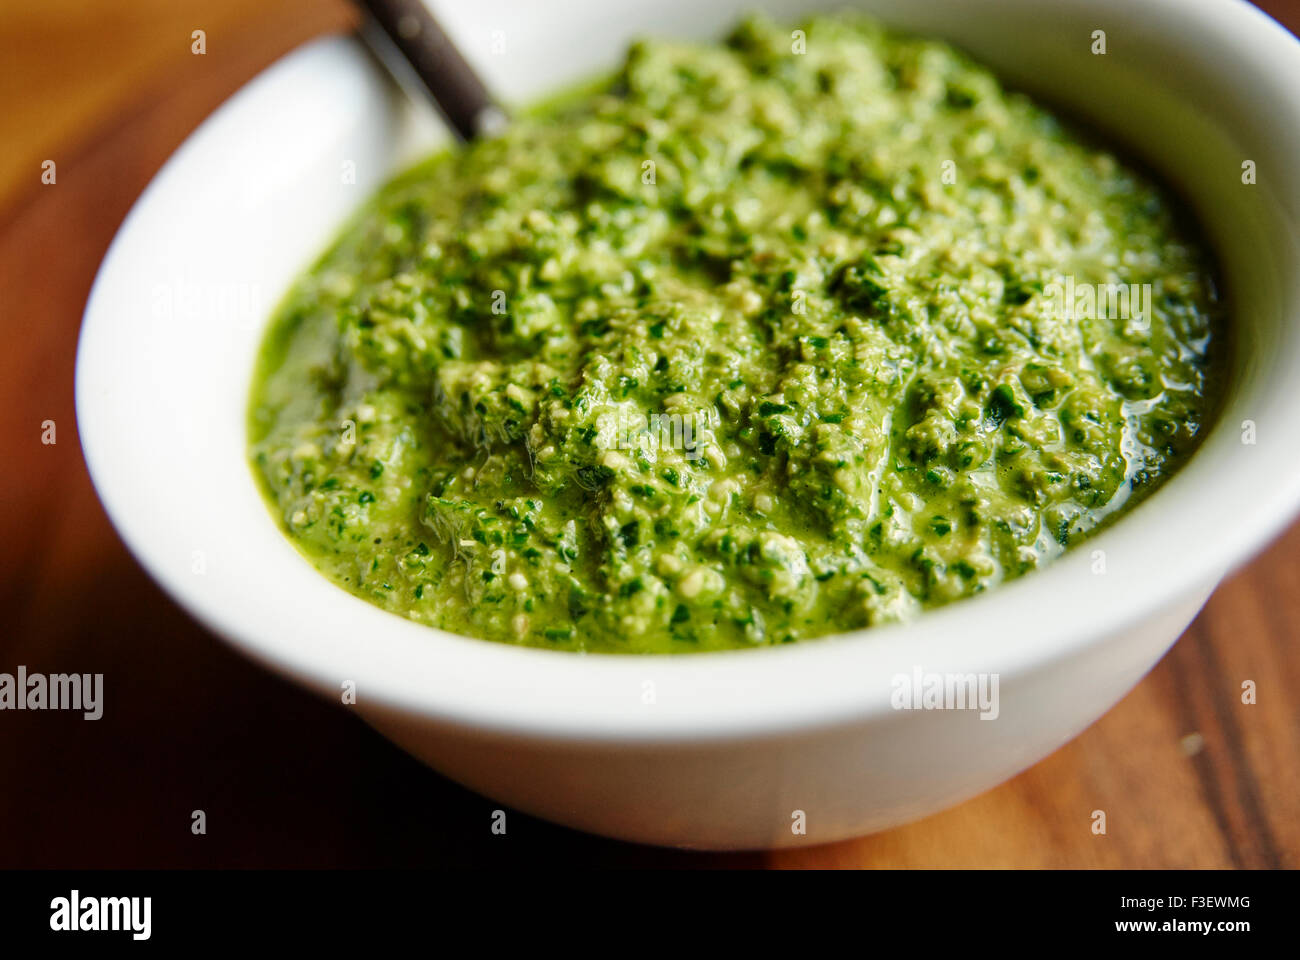 Kale pesto, made with fresh kale, walnuts, garlic, olive oil and nutritional yeast. - Stock Image